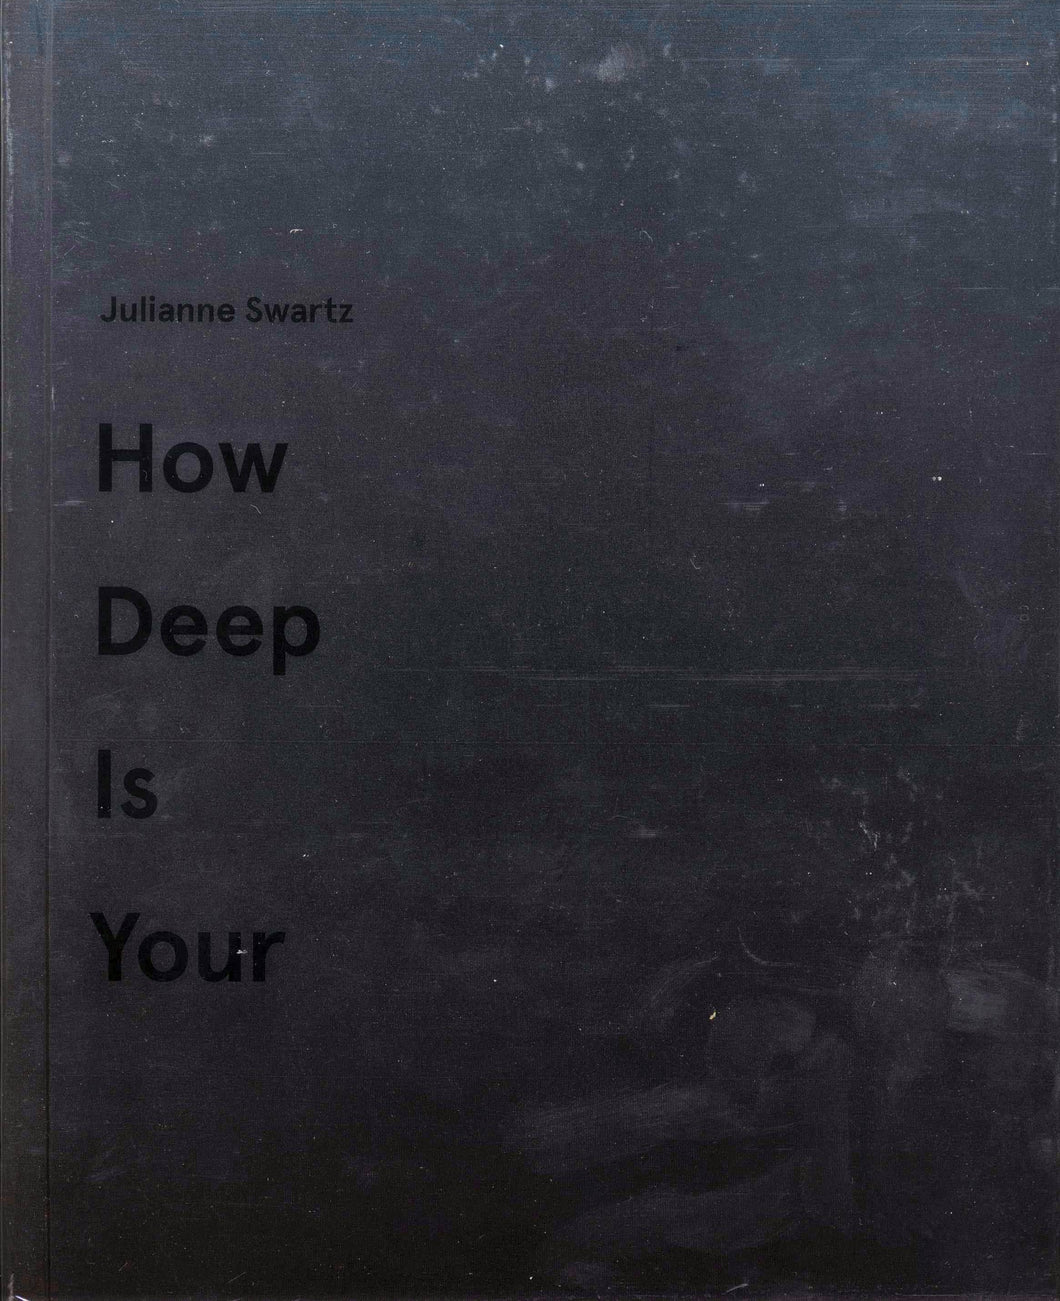 Julianne Swartz: How Deep is Your Catalog